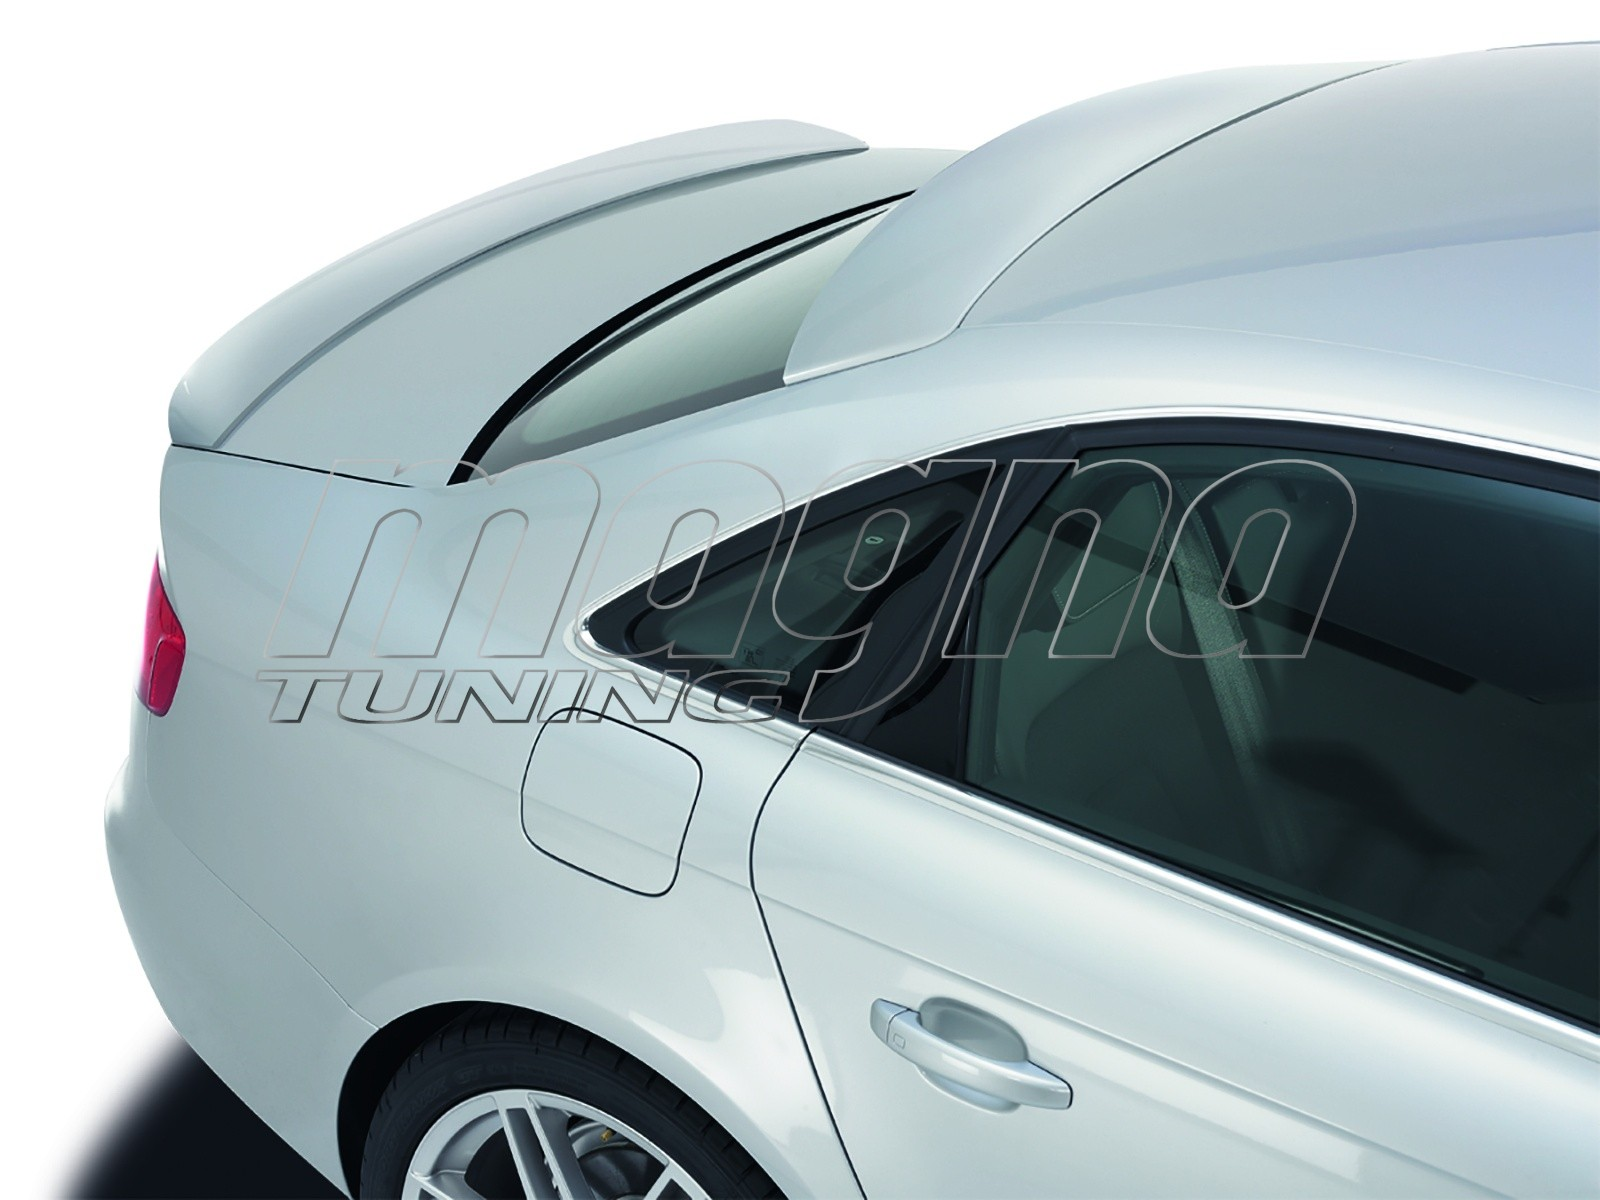 audi a4 b8 8k newline window spoiler. Black Bedroom Furniture Sets. Home Design Ideas